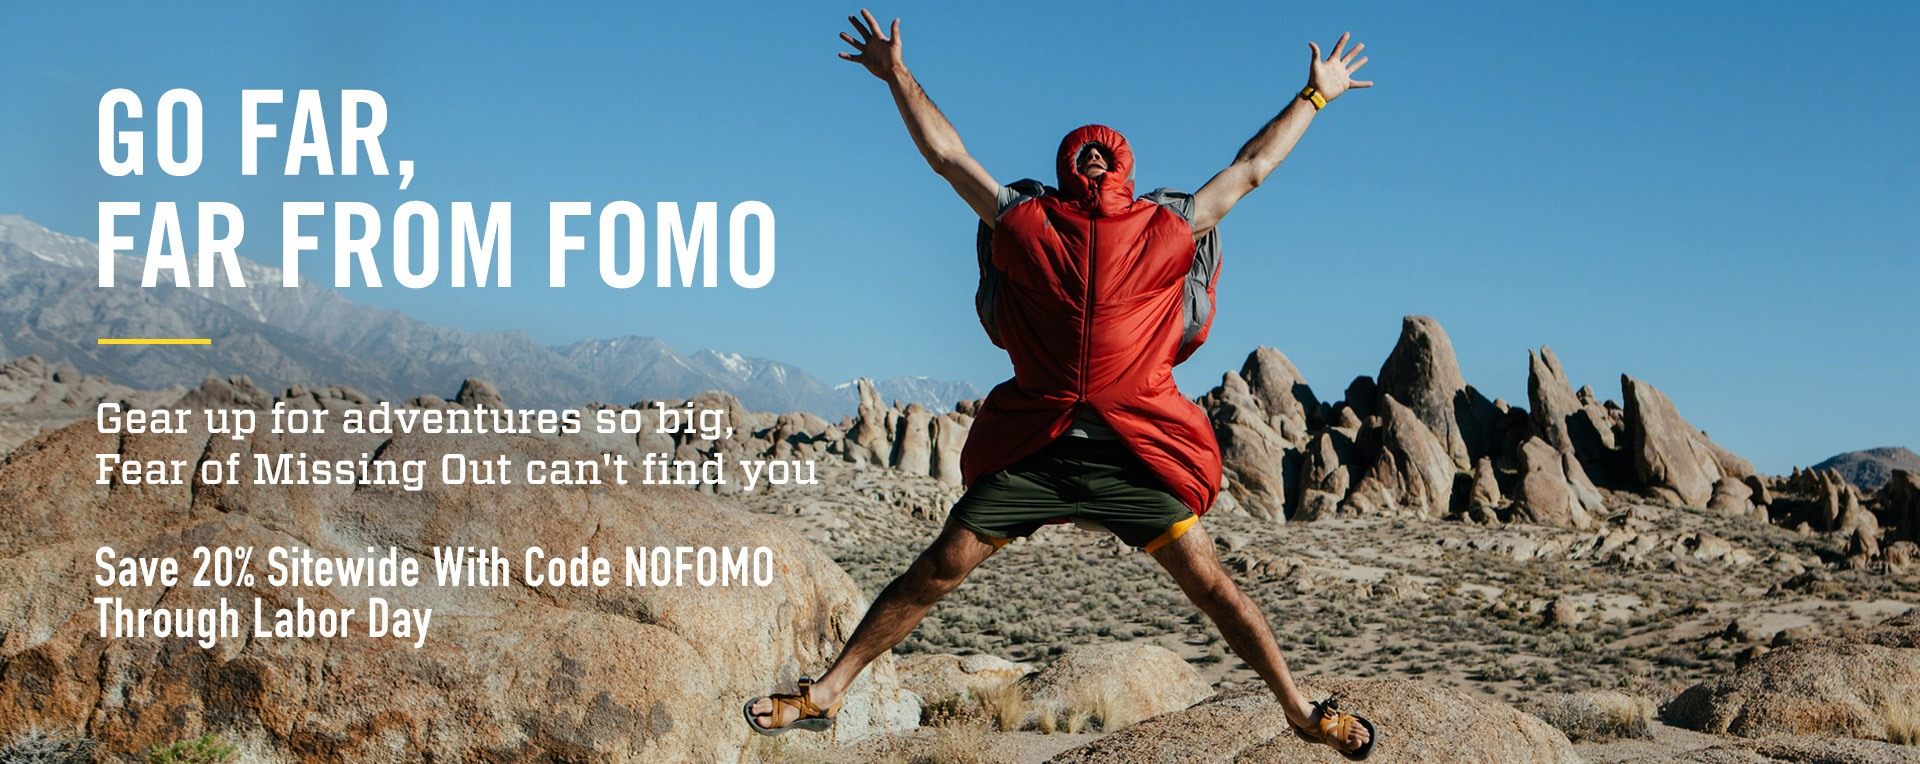 Save 20% Sitewide With Code NOFOMO